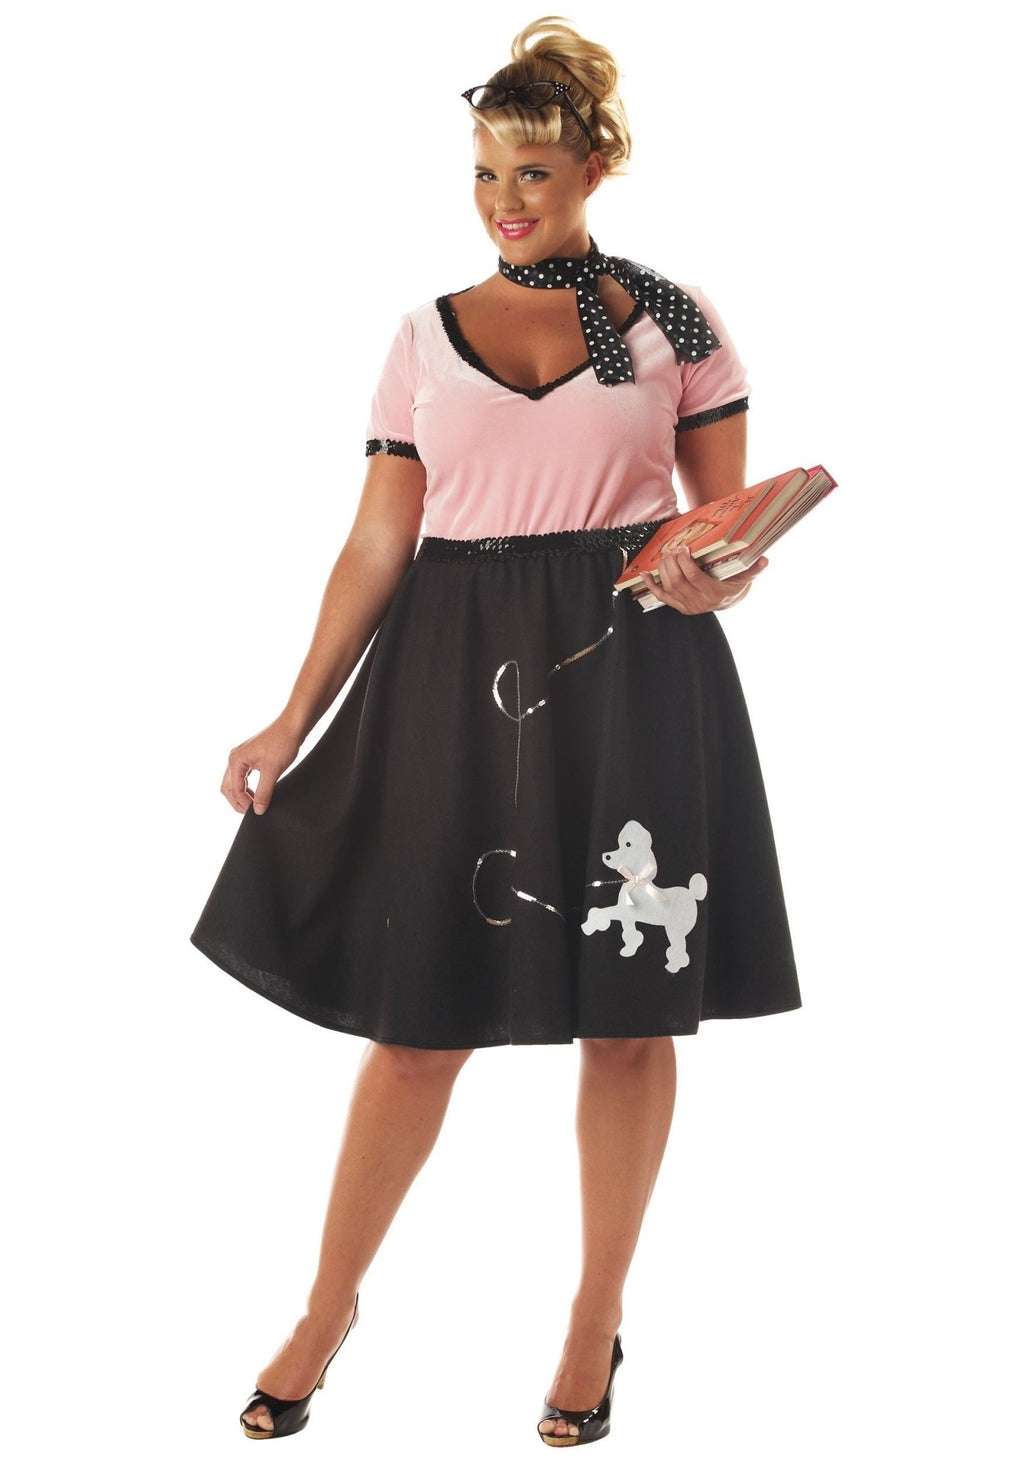 50's Sweetheart Poodle Outfit - PLUS Size - Party Zone USA